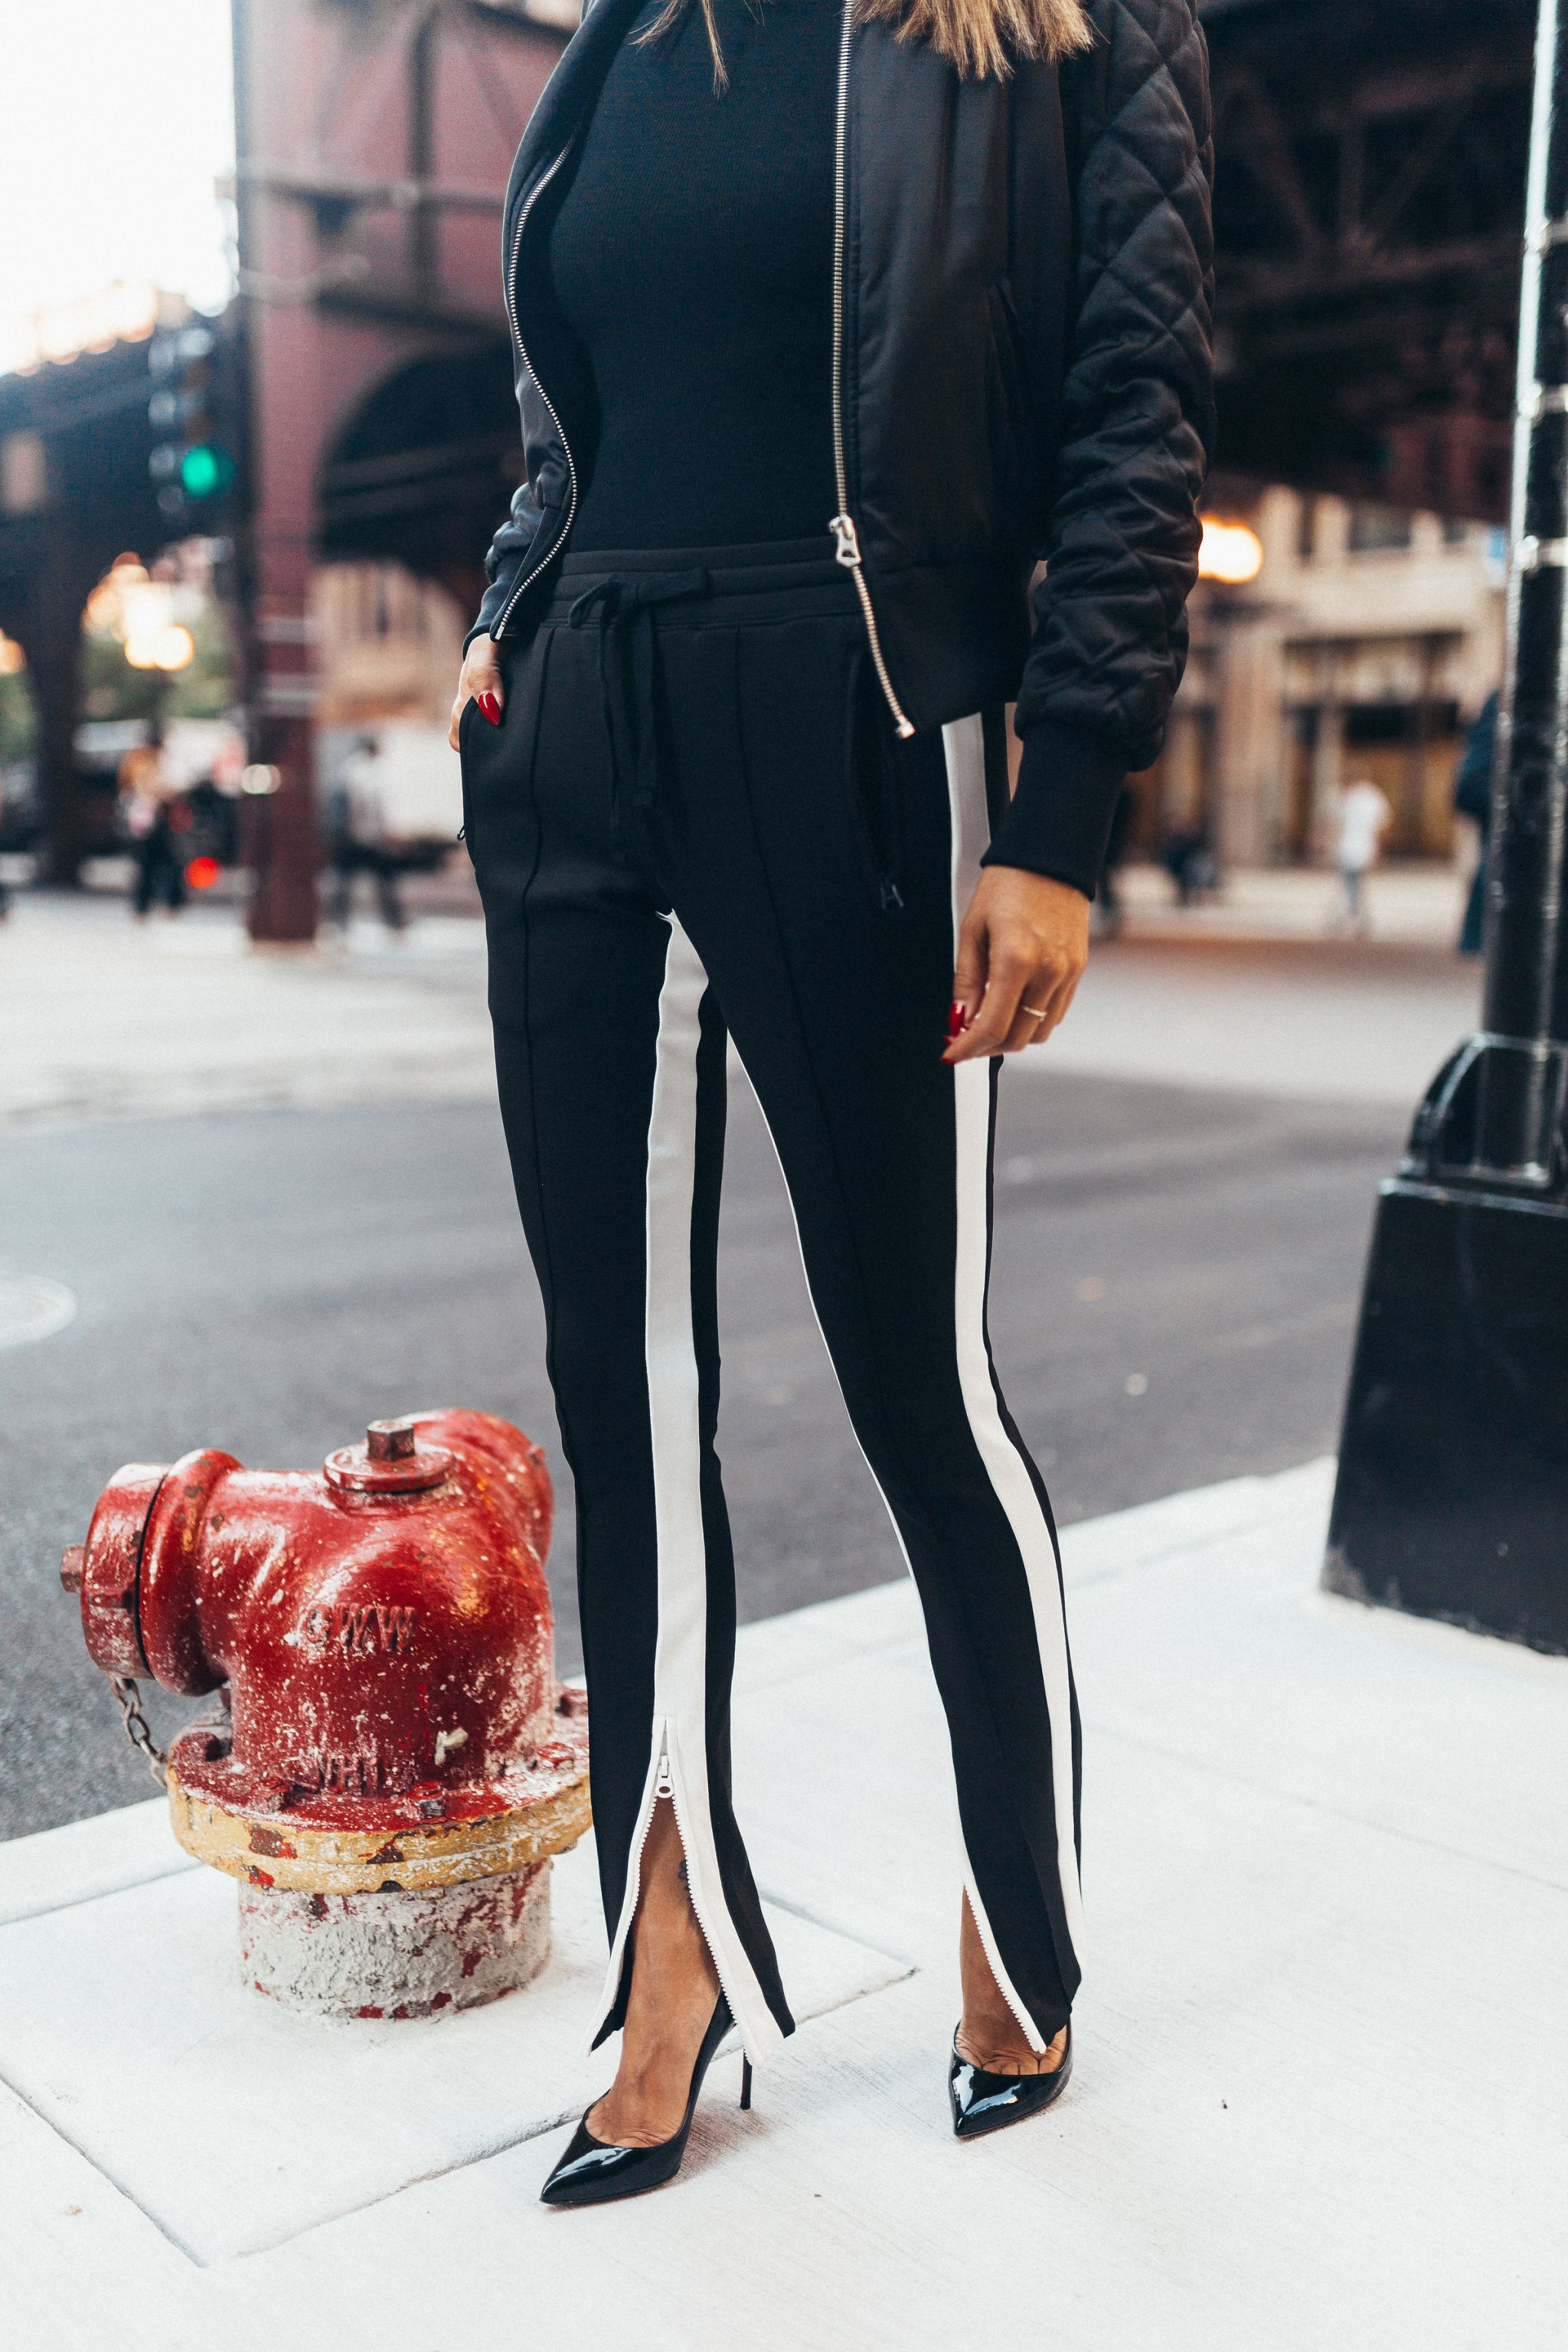 Pam and Gela Cigarette Sweatpants, Skinny Sweatpants, Revolve Sweatpants, Striped Sweatpants, Best sweatpants for a fashionista, Jennifer Worman, Chicago Style Blogger, Black sweatpants with white stripe